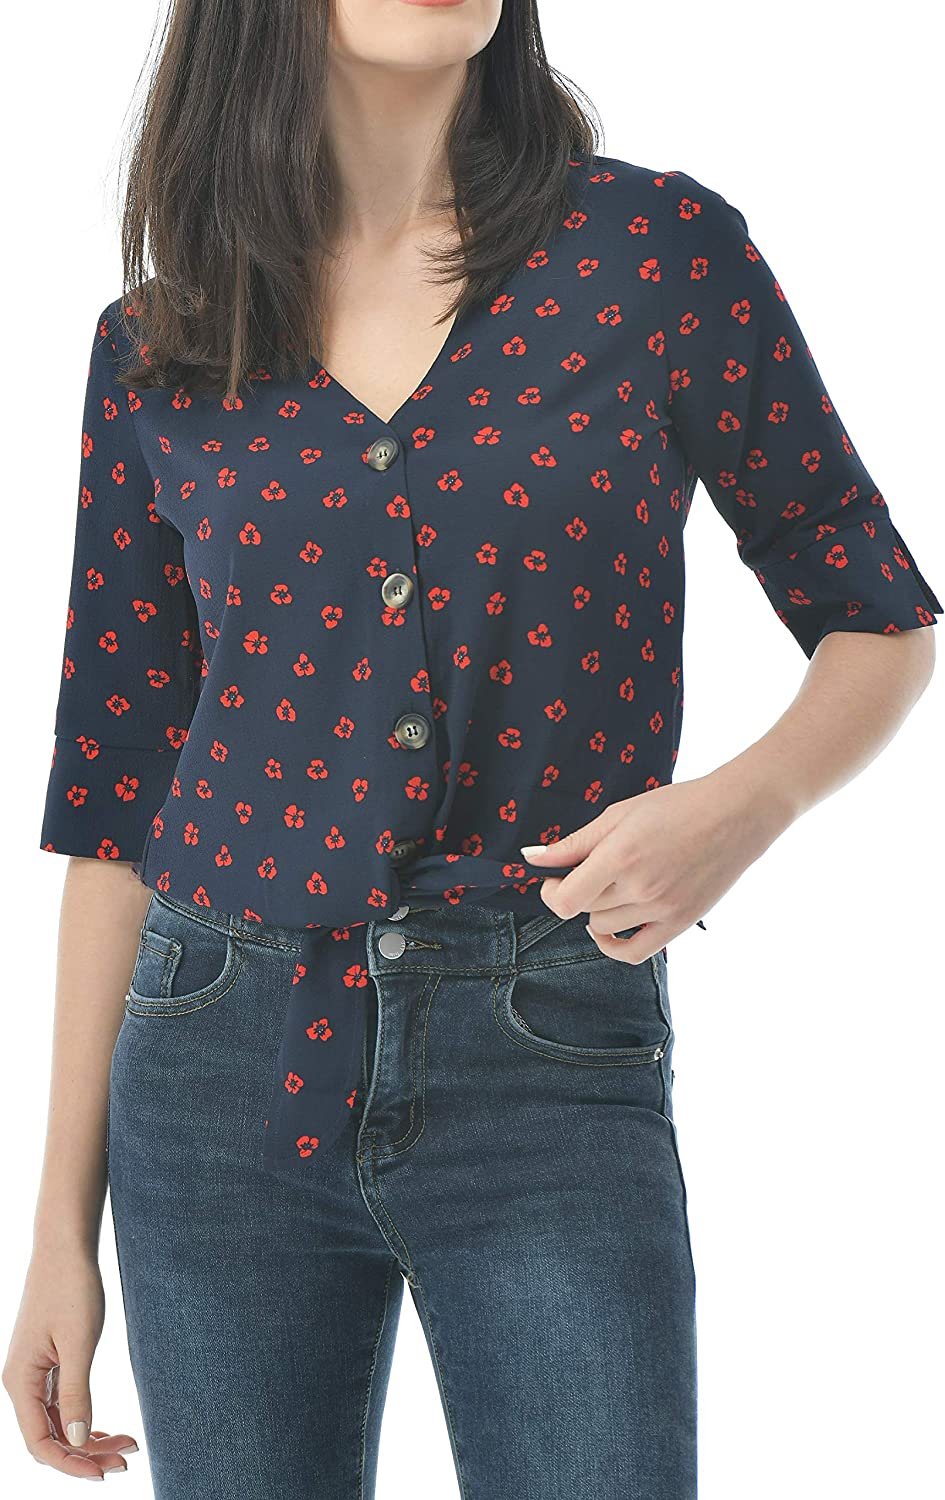 Women's Casual Cute Summer Tops, V Neck 3/4 Sleeve Button Down Blouses,Tie Knot Chiffon Shirts